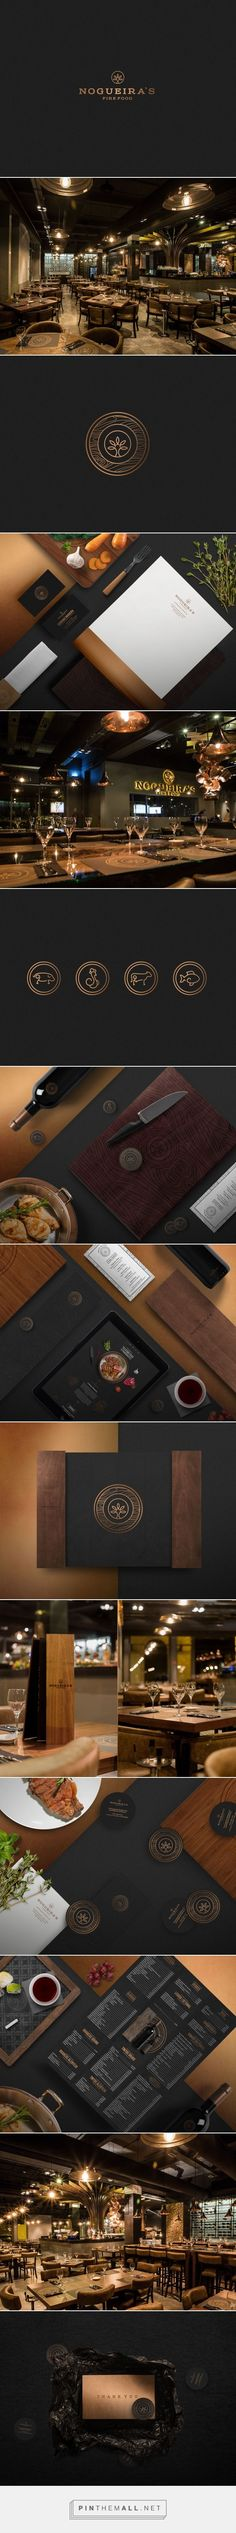 Nogueira's Fire Food Restaurant Branding by Bullseye  | Fivestar Branding Agency – Design and Branding Agency & Curated Inspiration Gallery